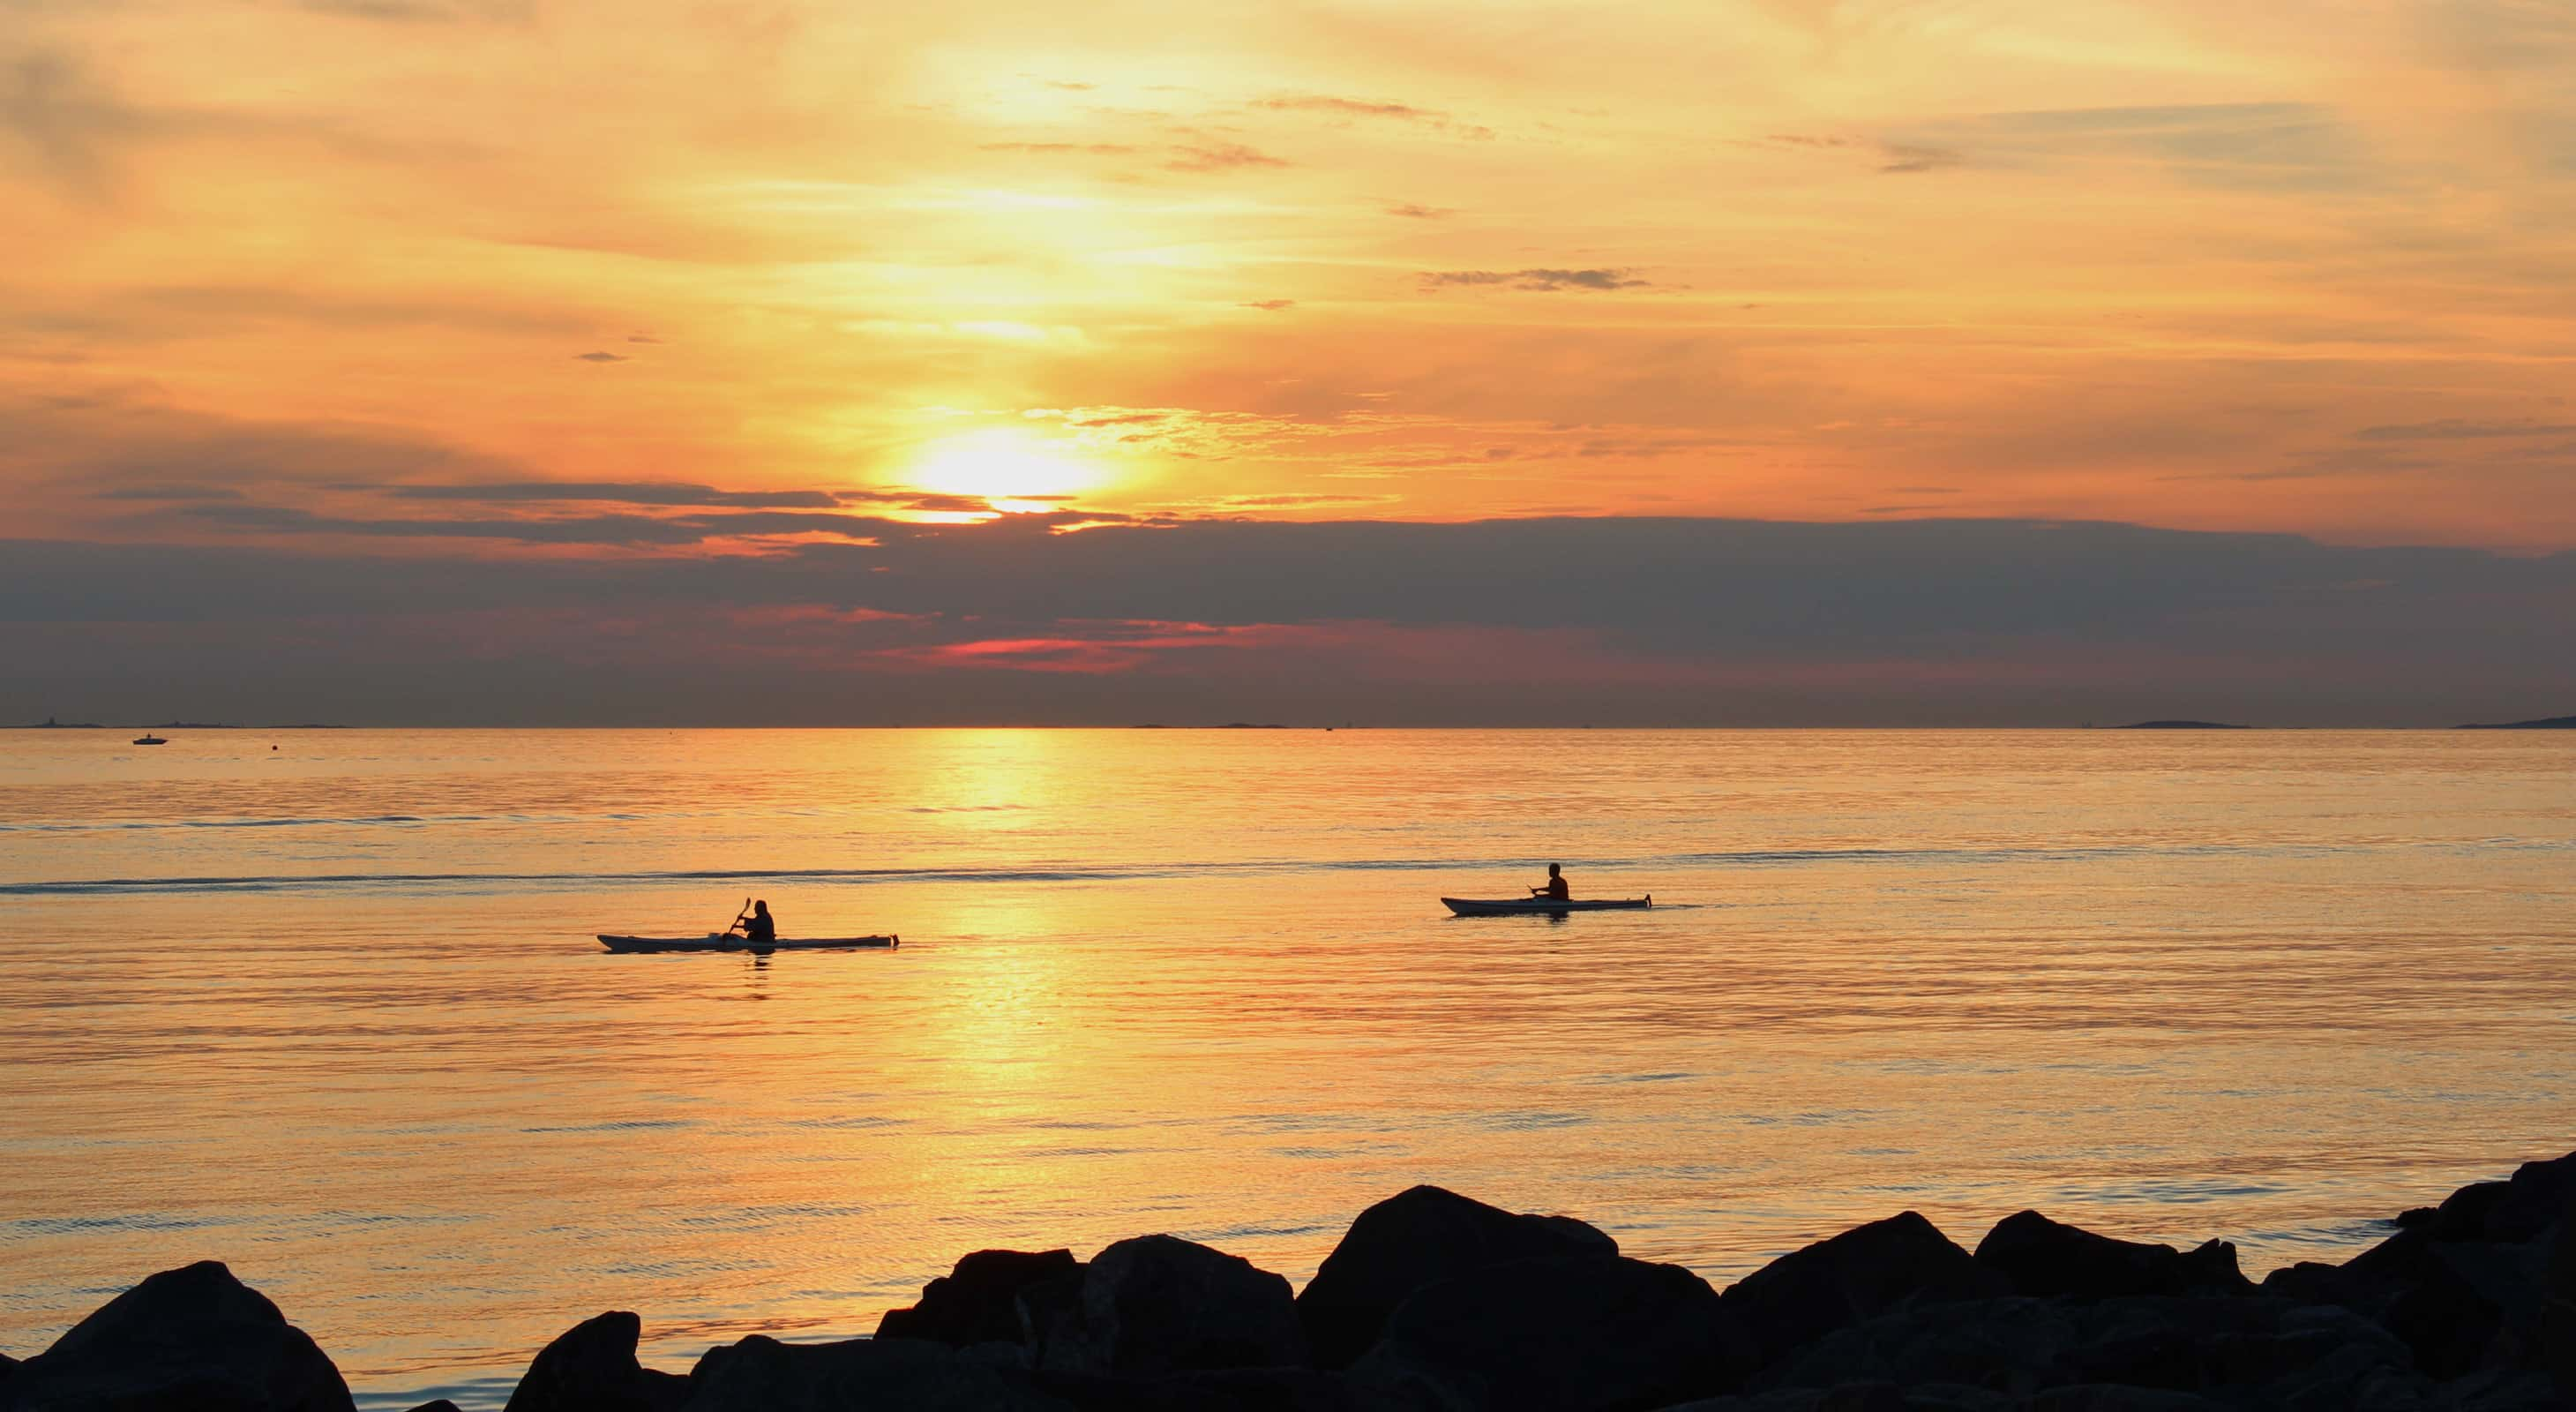 Two kayakers in the ocean at sunrise